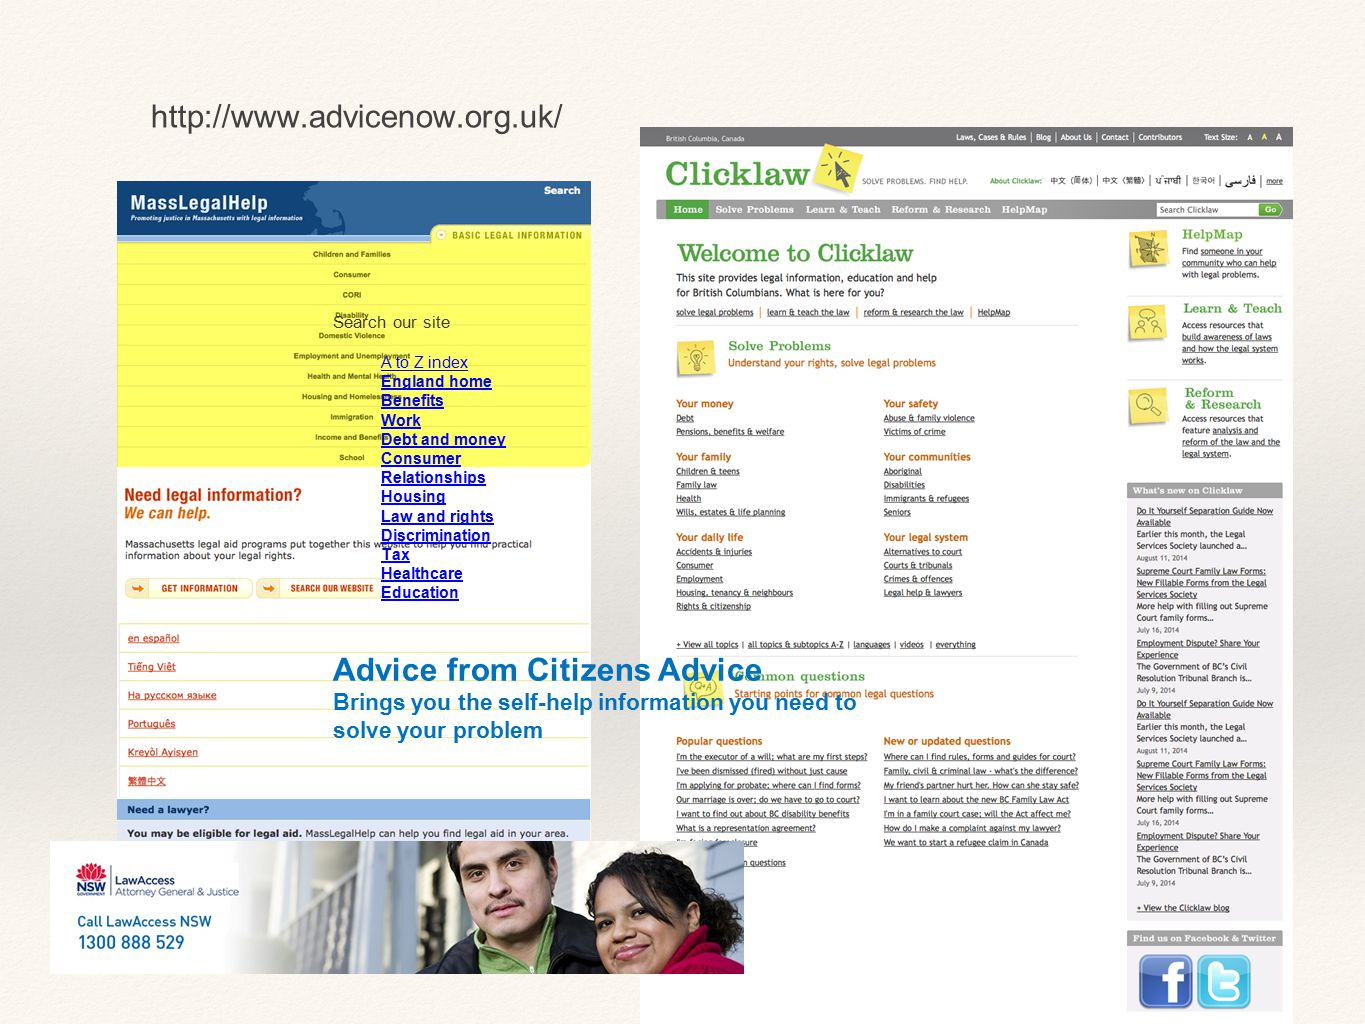 Search our site A to Z index England home Benefits Work Debt and money Consumer Relationships Housing Law and rights Discrimination Tax Healthcare Education Advice from Citizens Advice Brings you the self-help information you need to solve your problem http://www.advicenow.org.uk/